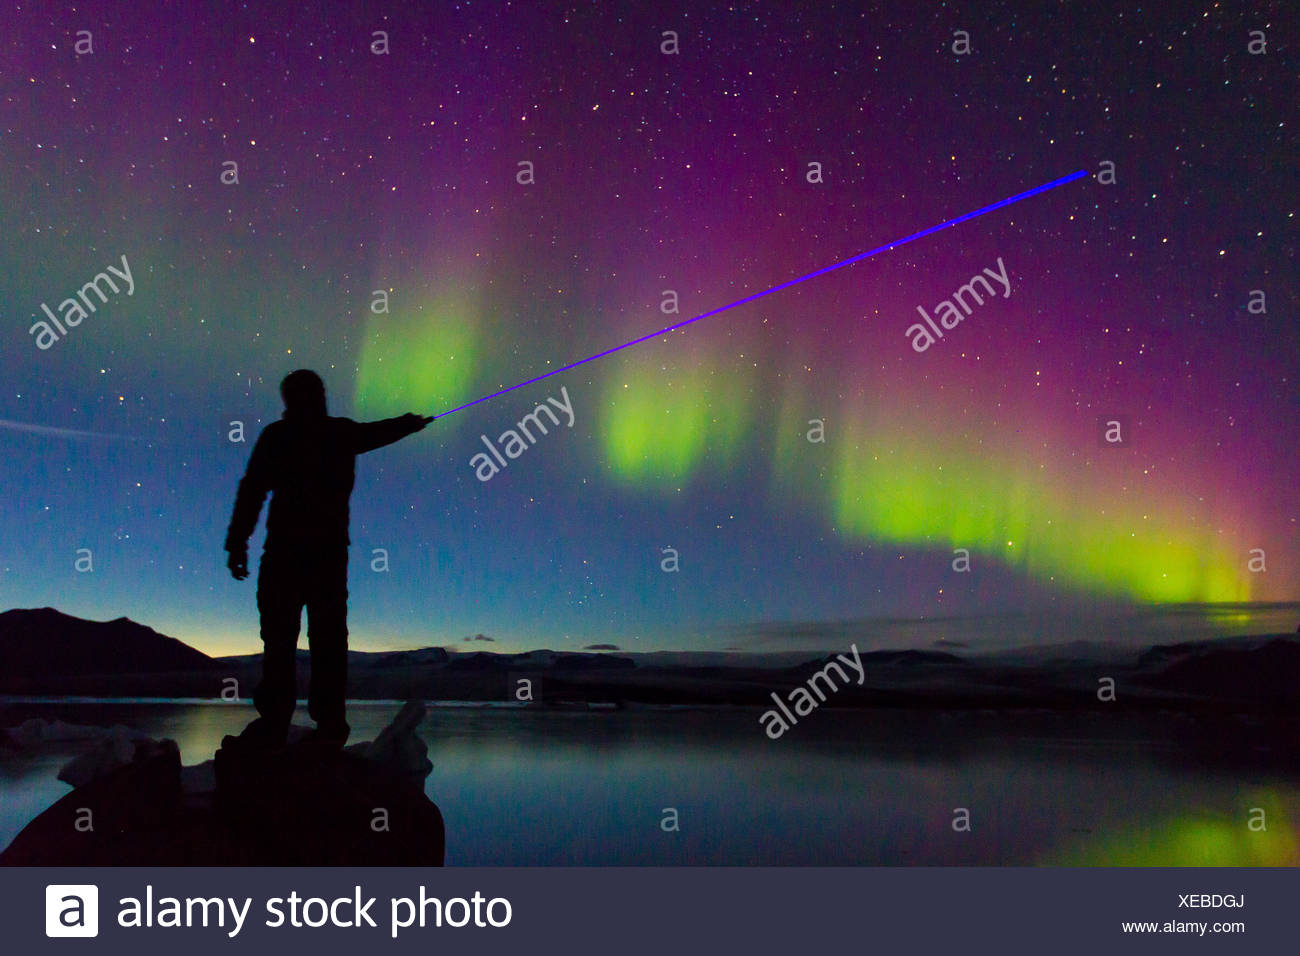 A man shining a blue laser at the Northern Lights during a geomagnetic solar storm so intense the lights reflecting off the freezing water. - Stock Image